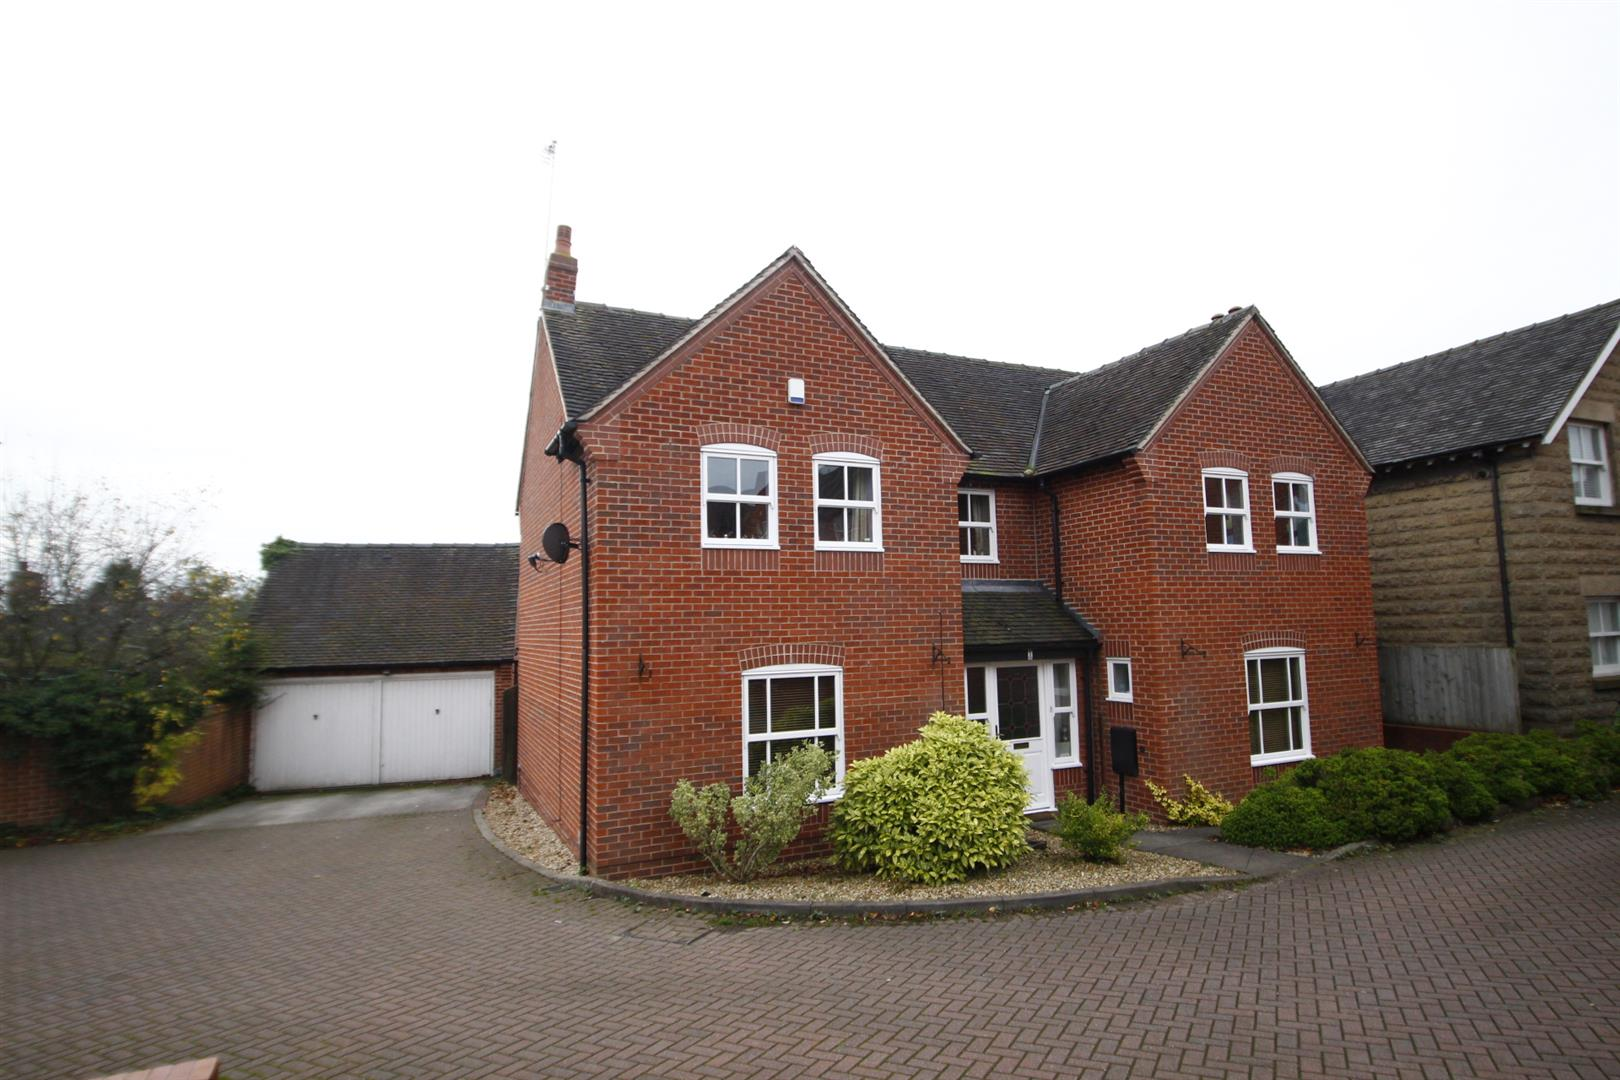 4 Bedrooms Detached House for sale in Sundial Close, Brailsford, Ashbourne